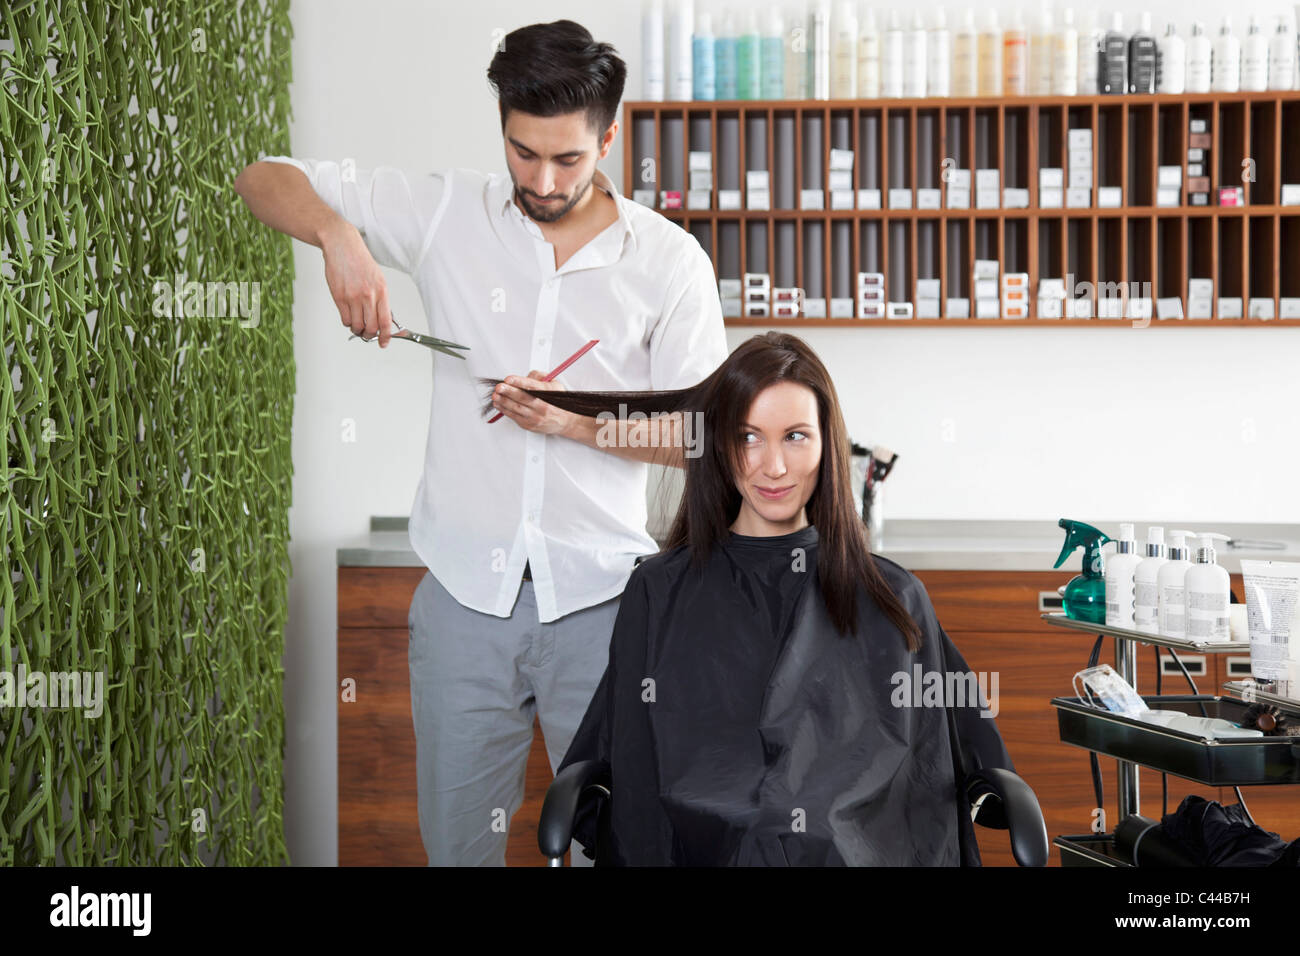 A woman having her hair cut by a male hairdresser - Stock Image